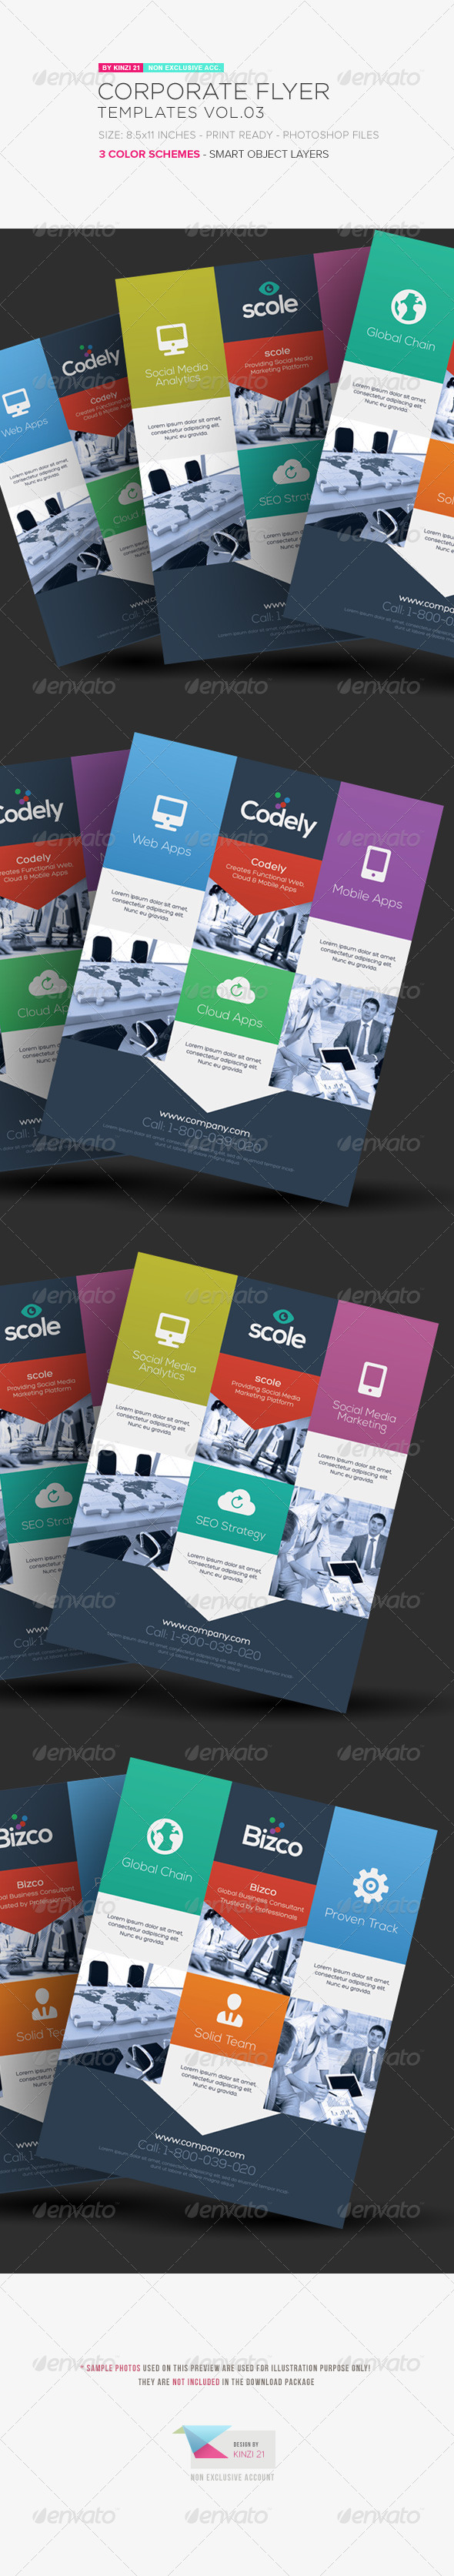 Corporate Flyer Templates Vol.03 - Corporate Flyers